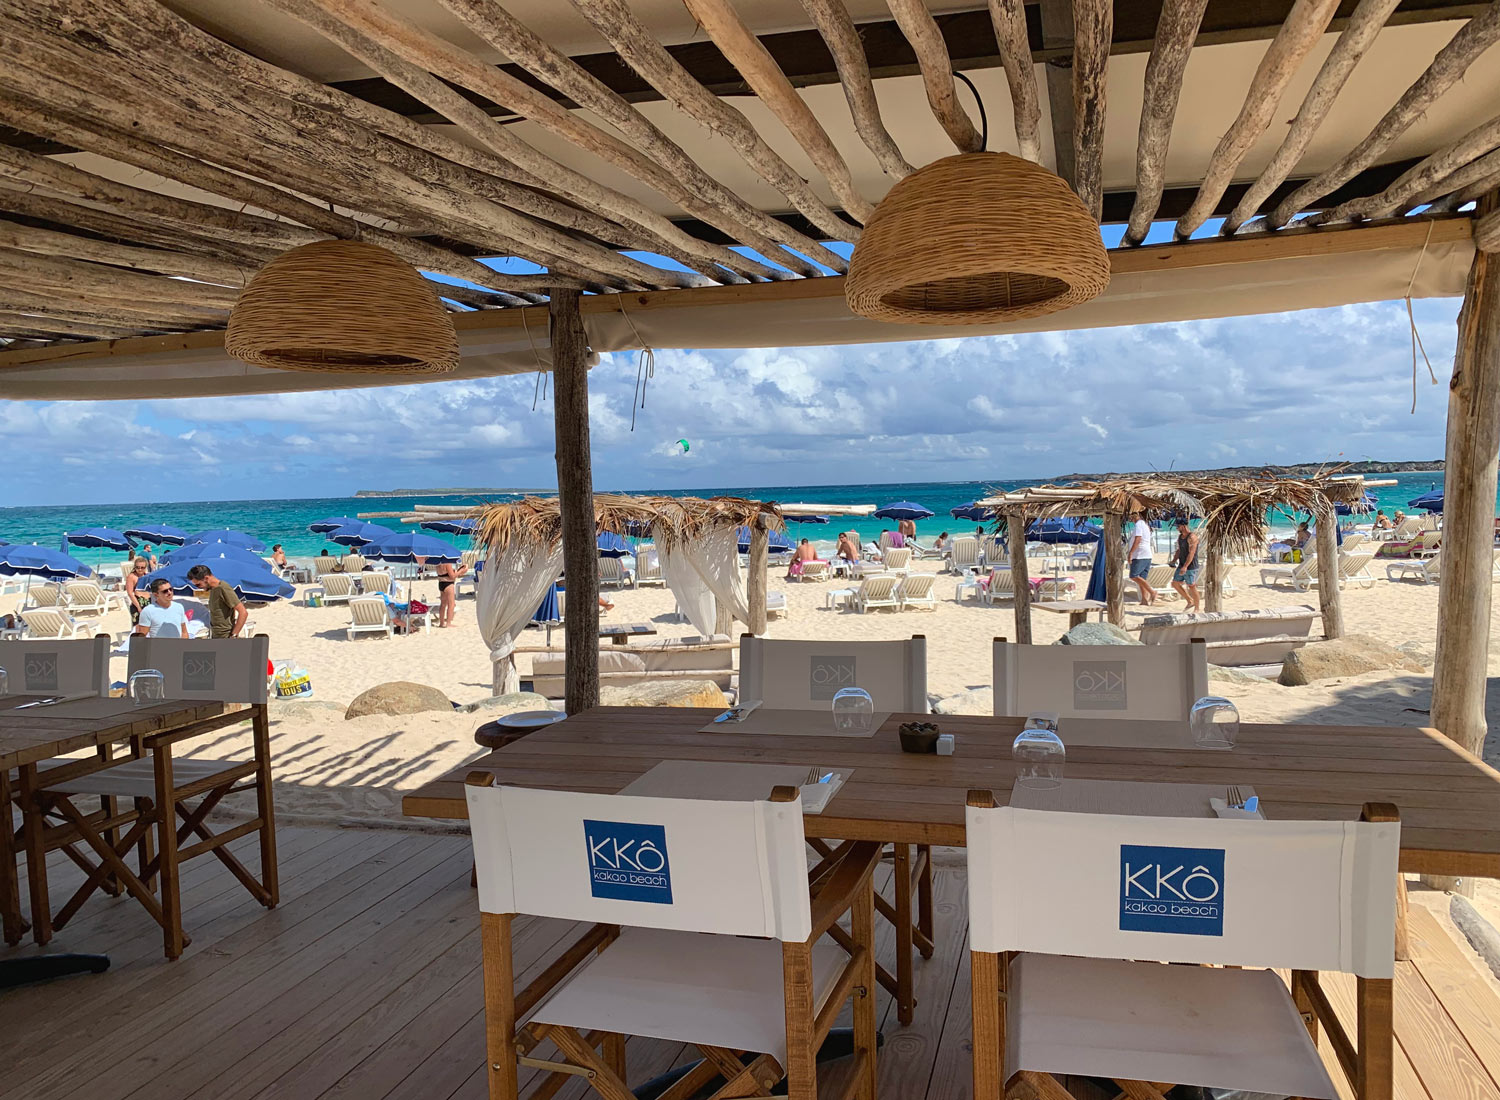 Saint-Martin-Orient-Beach-Kakao-seating.jpg